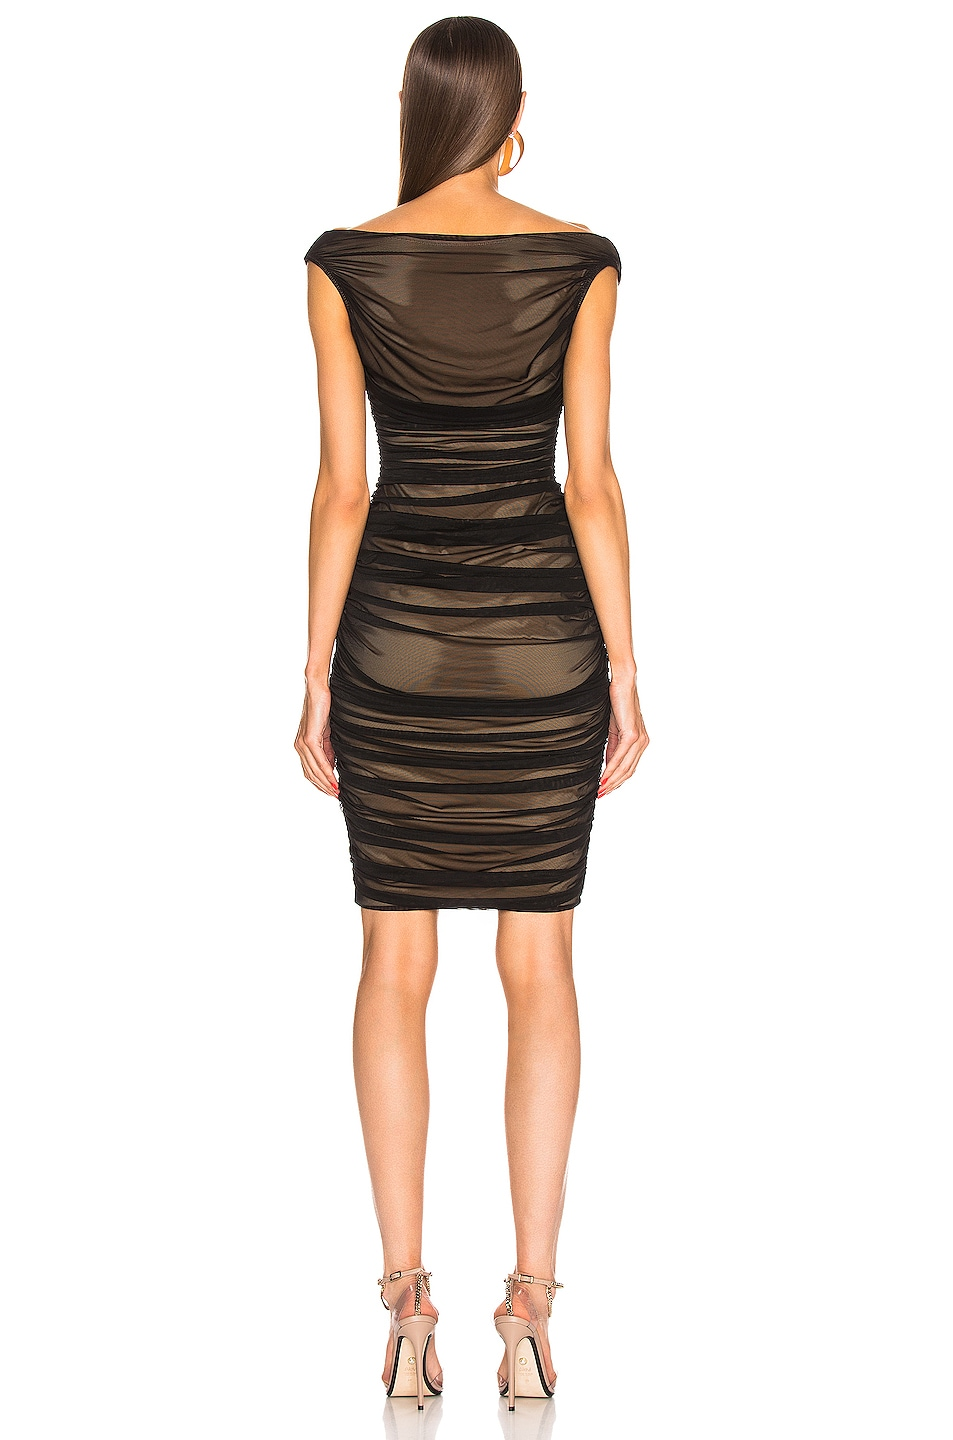 Image 3 of Norma Kamali Tara Dress in Black Mesh